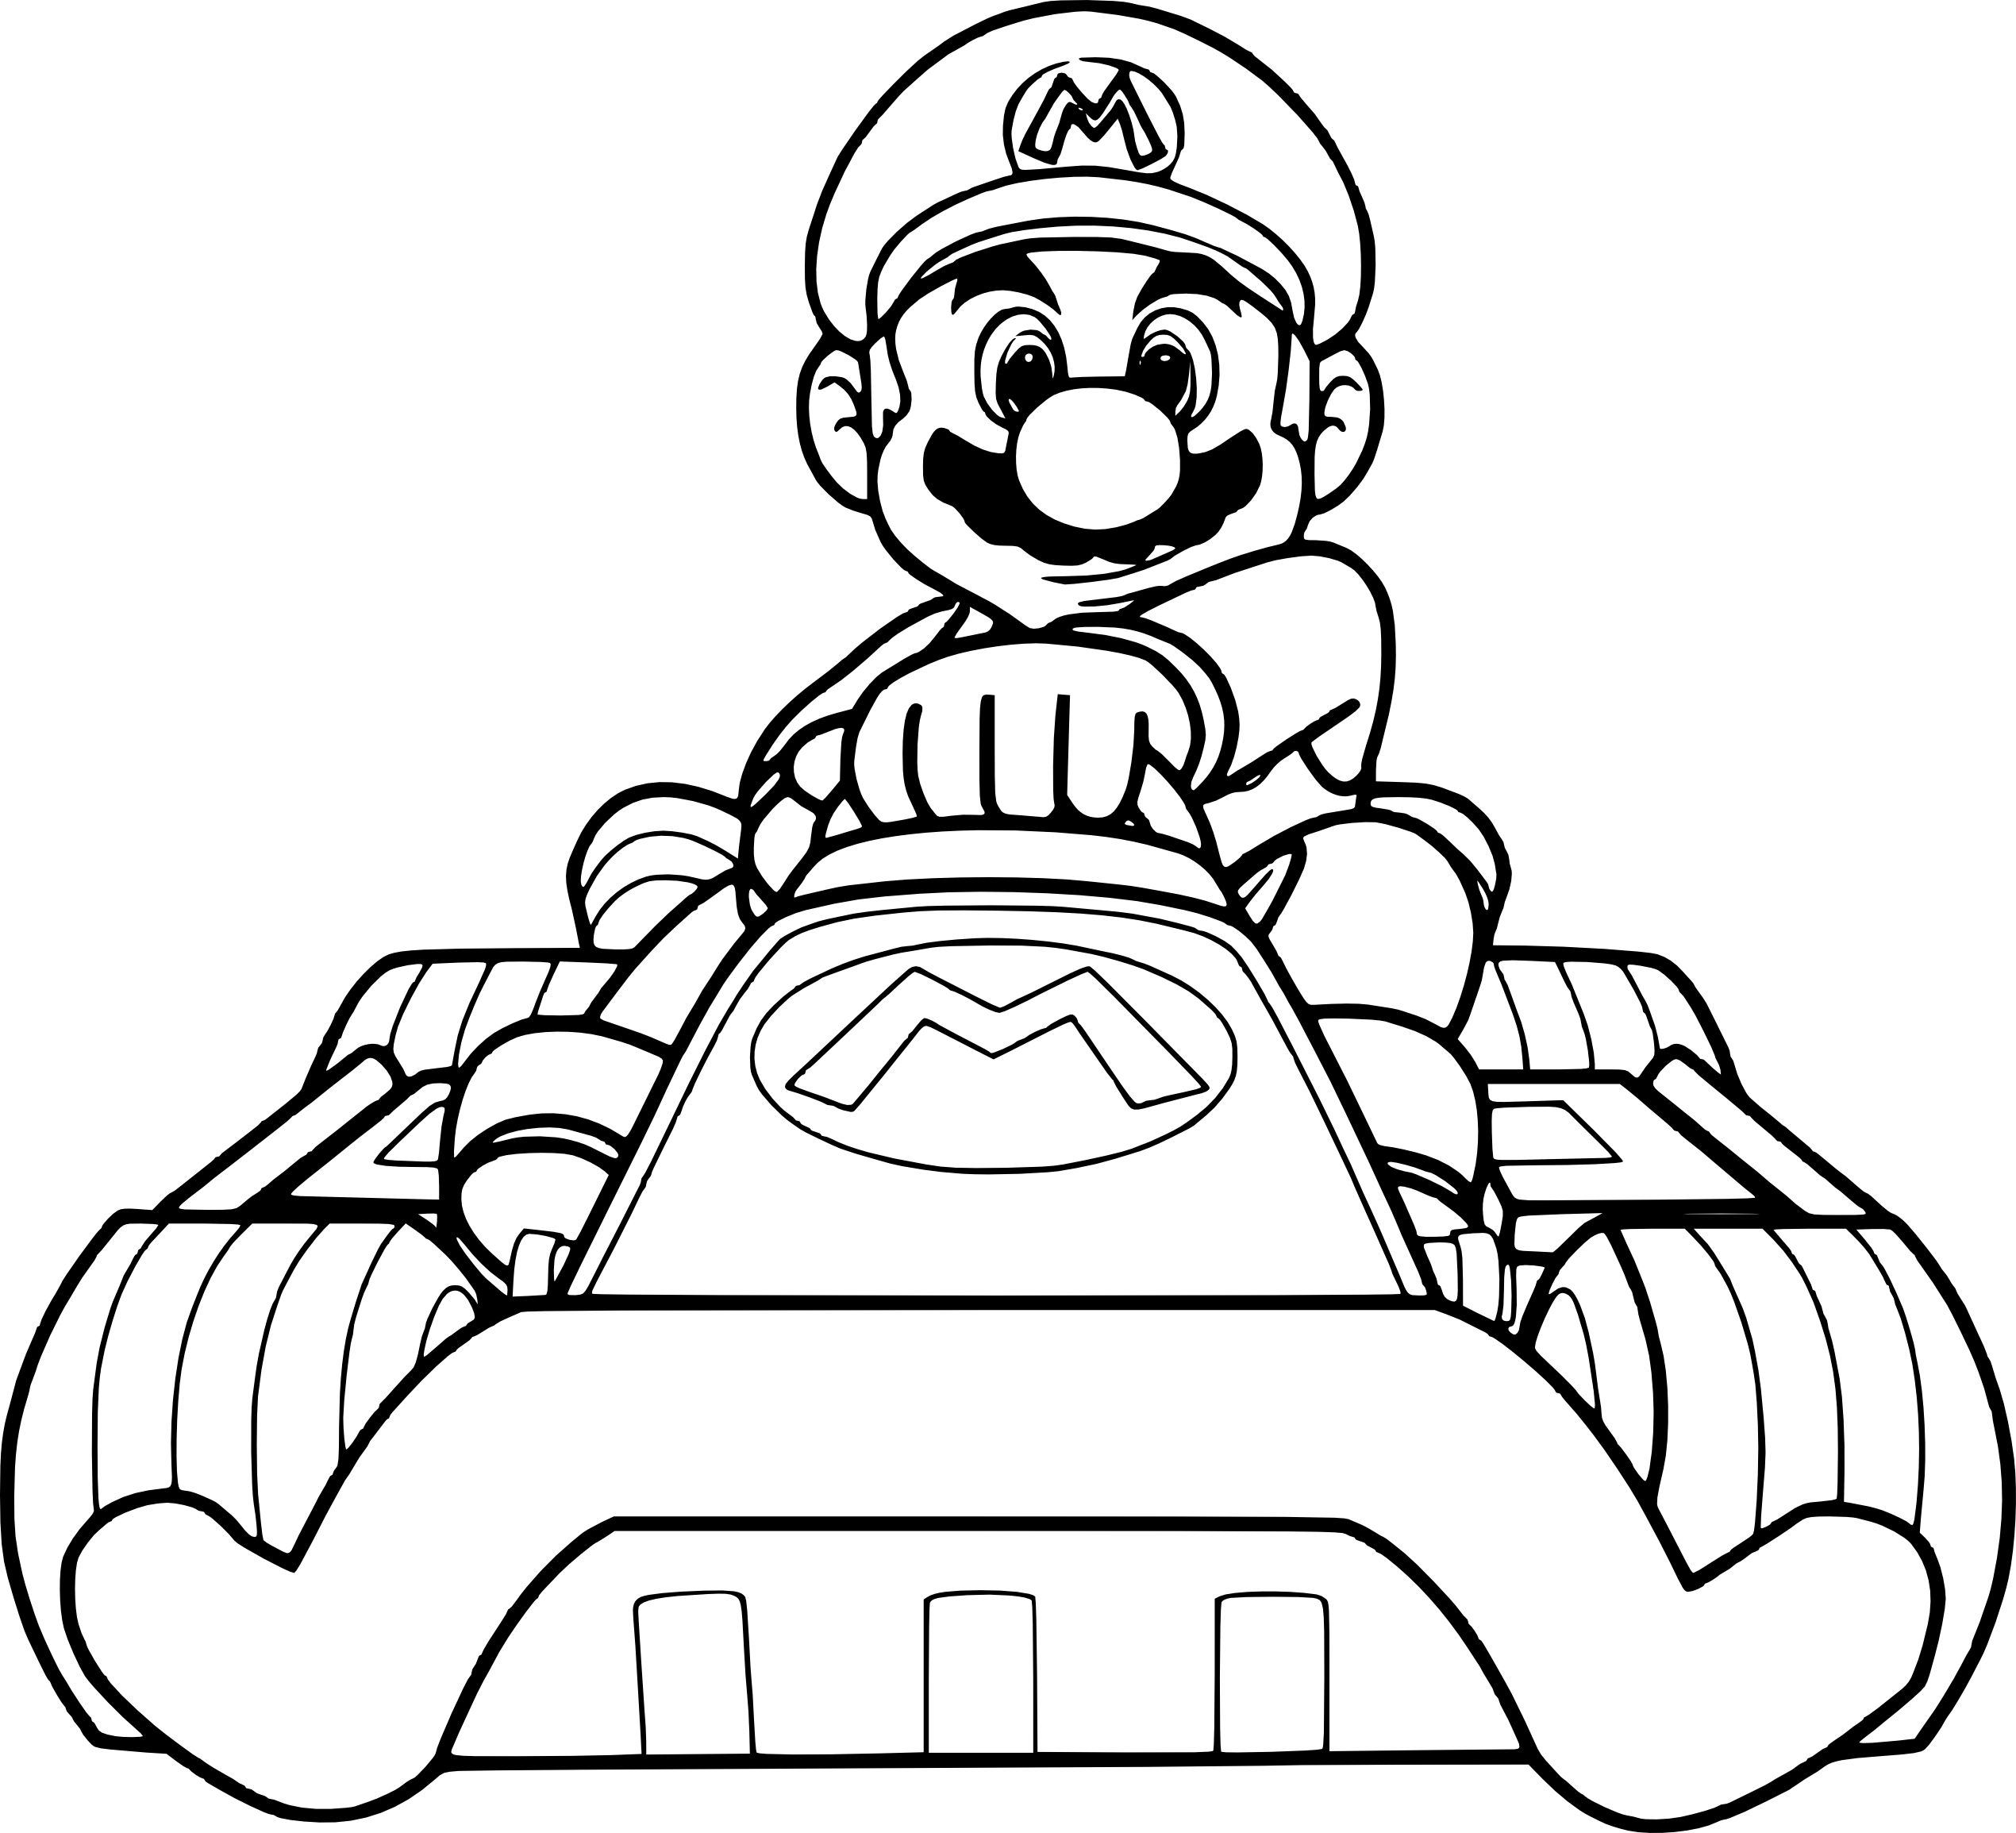 Pin By Imelda Falcone On Video Fun Mario Coloring Pages Super